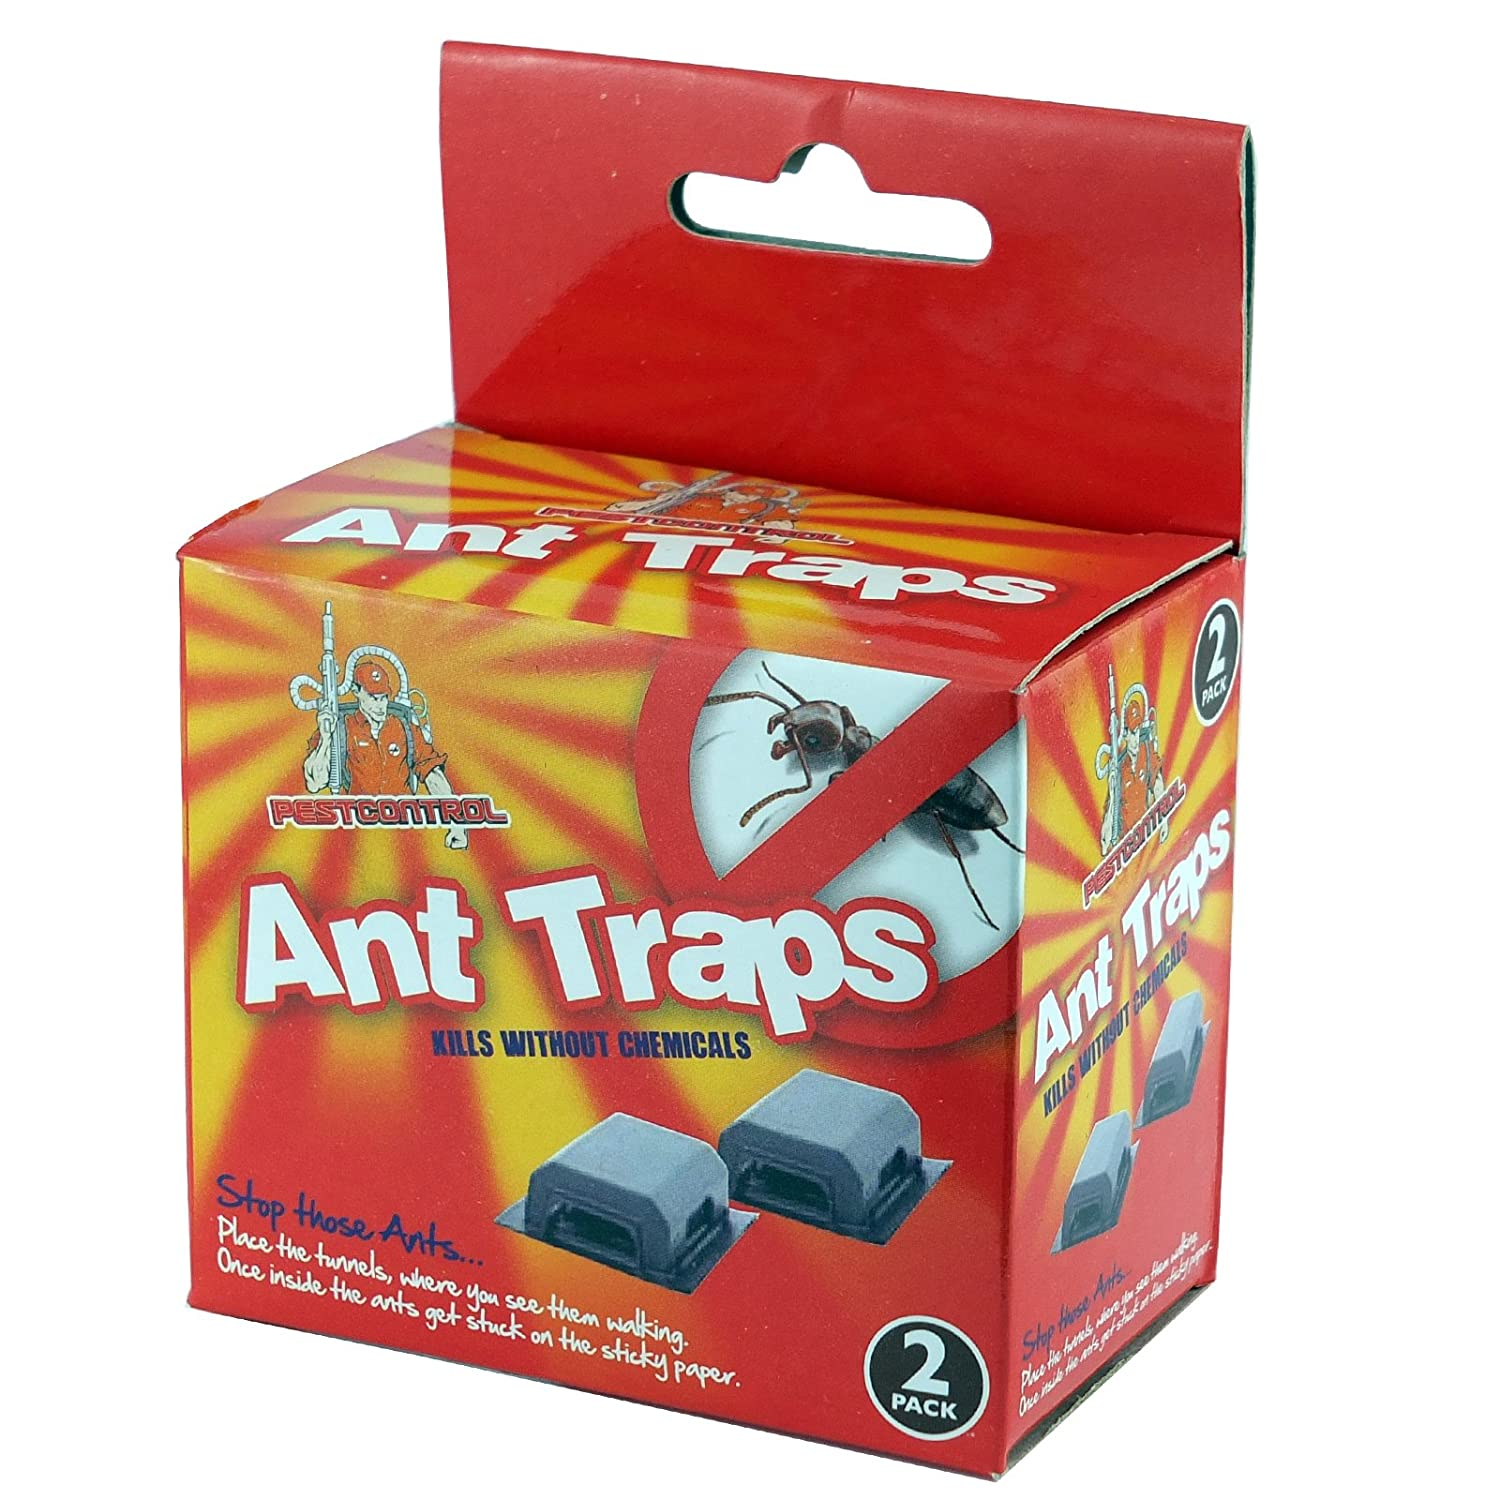 Ant Traps - Kills Without Chemicals (Pack of 1) Home Garden Online